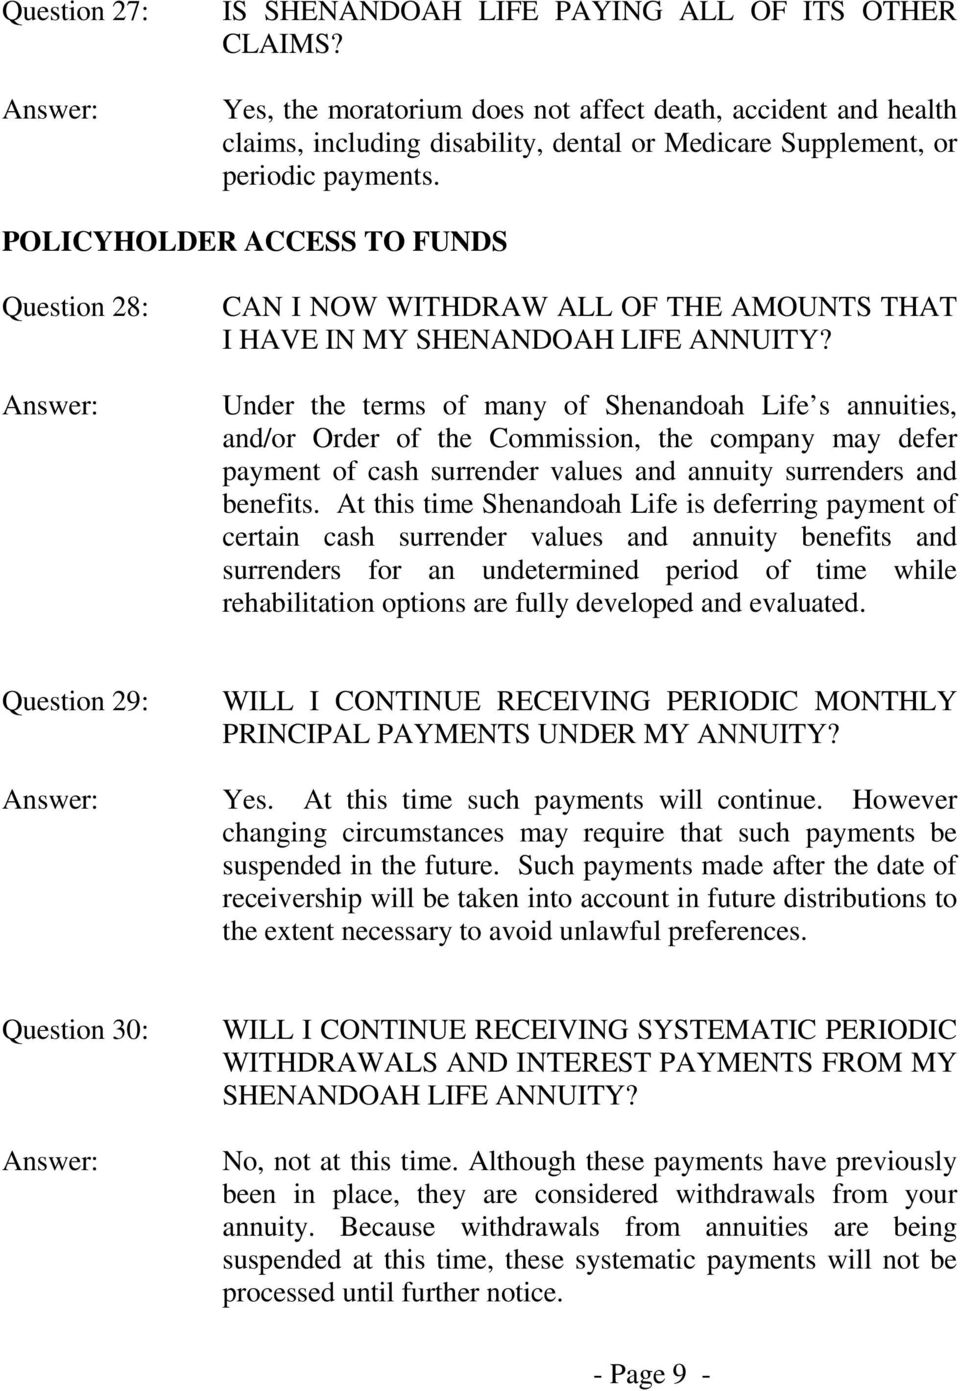 POLICYHOLDER ACCESS TO FUNDS Question 28: CAN I NOW WITHDRAW ALL OF THE AMOUNTS THAT I HAVE IN MY SHENANDOAH LIFE ANNUITY?